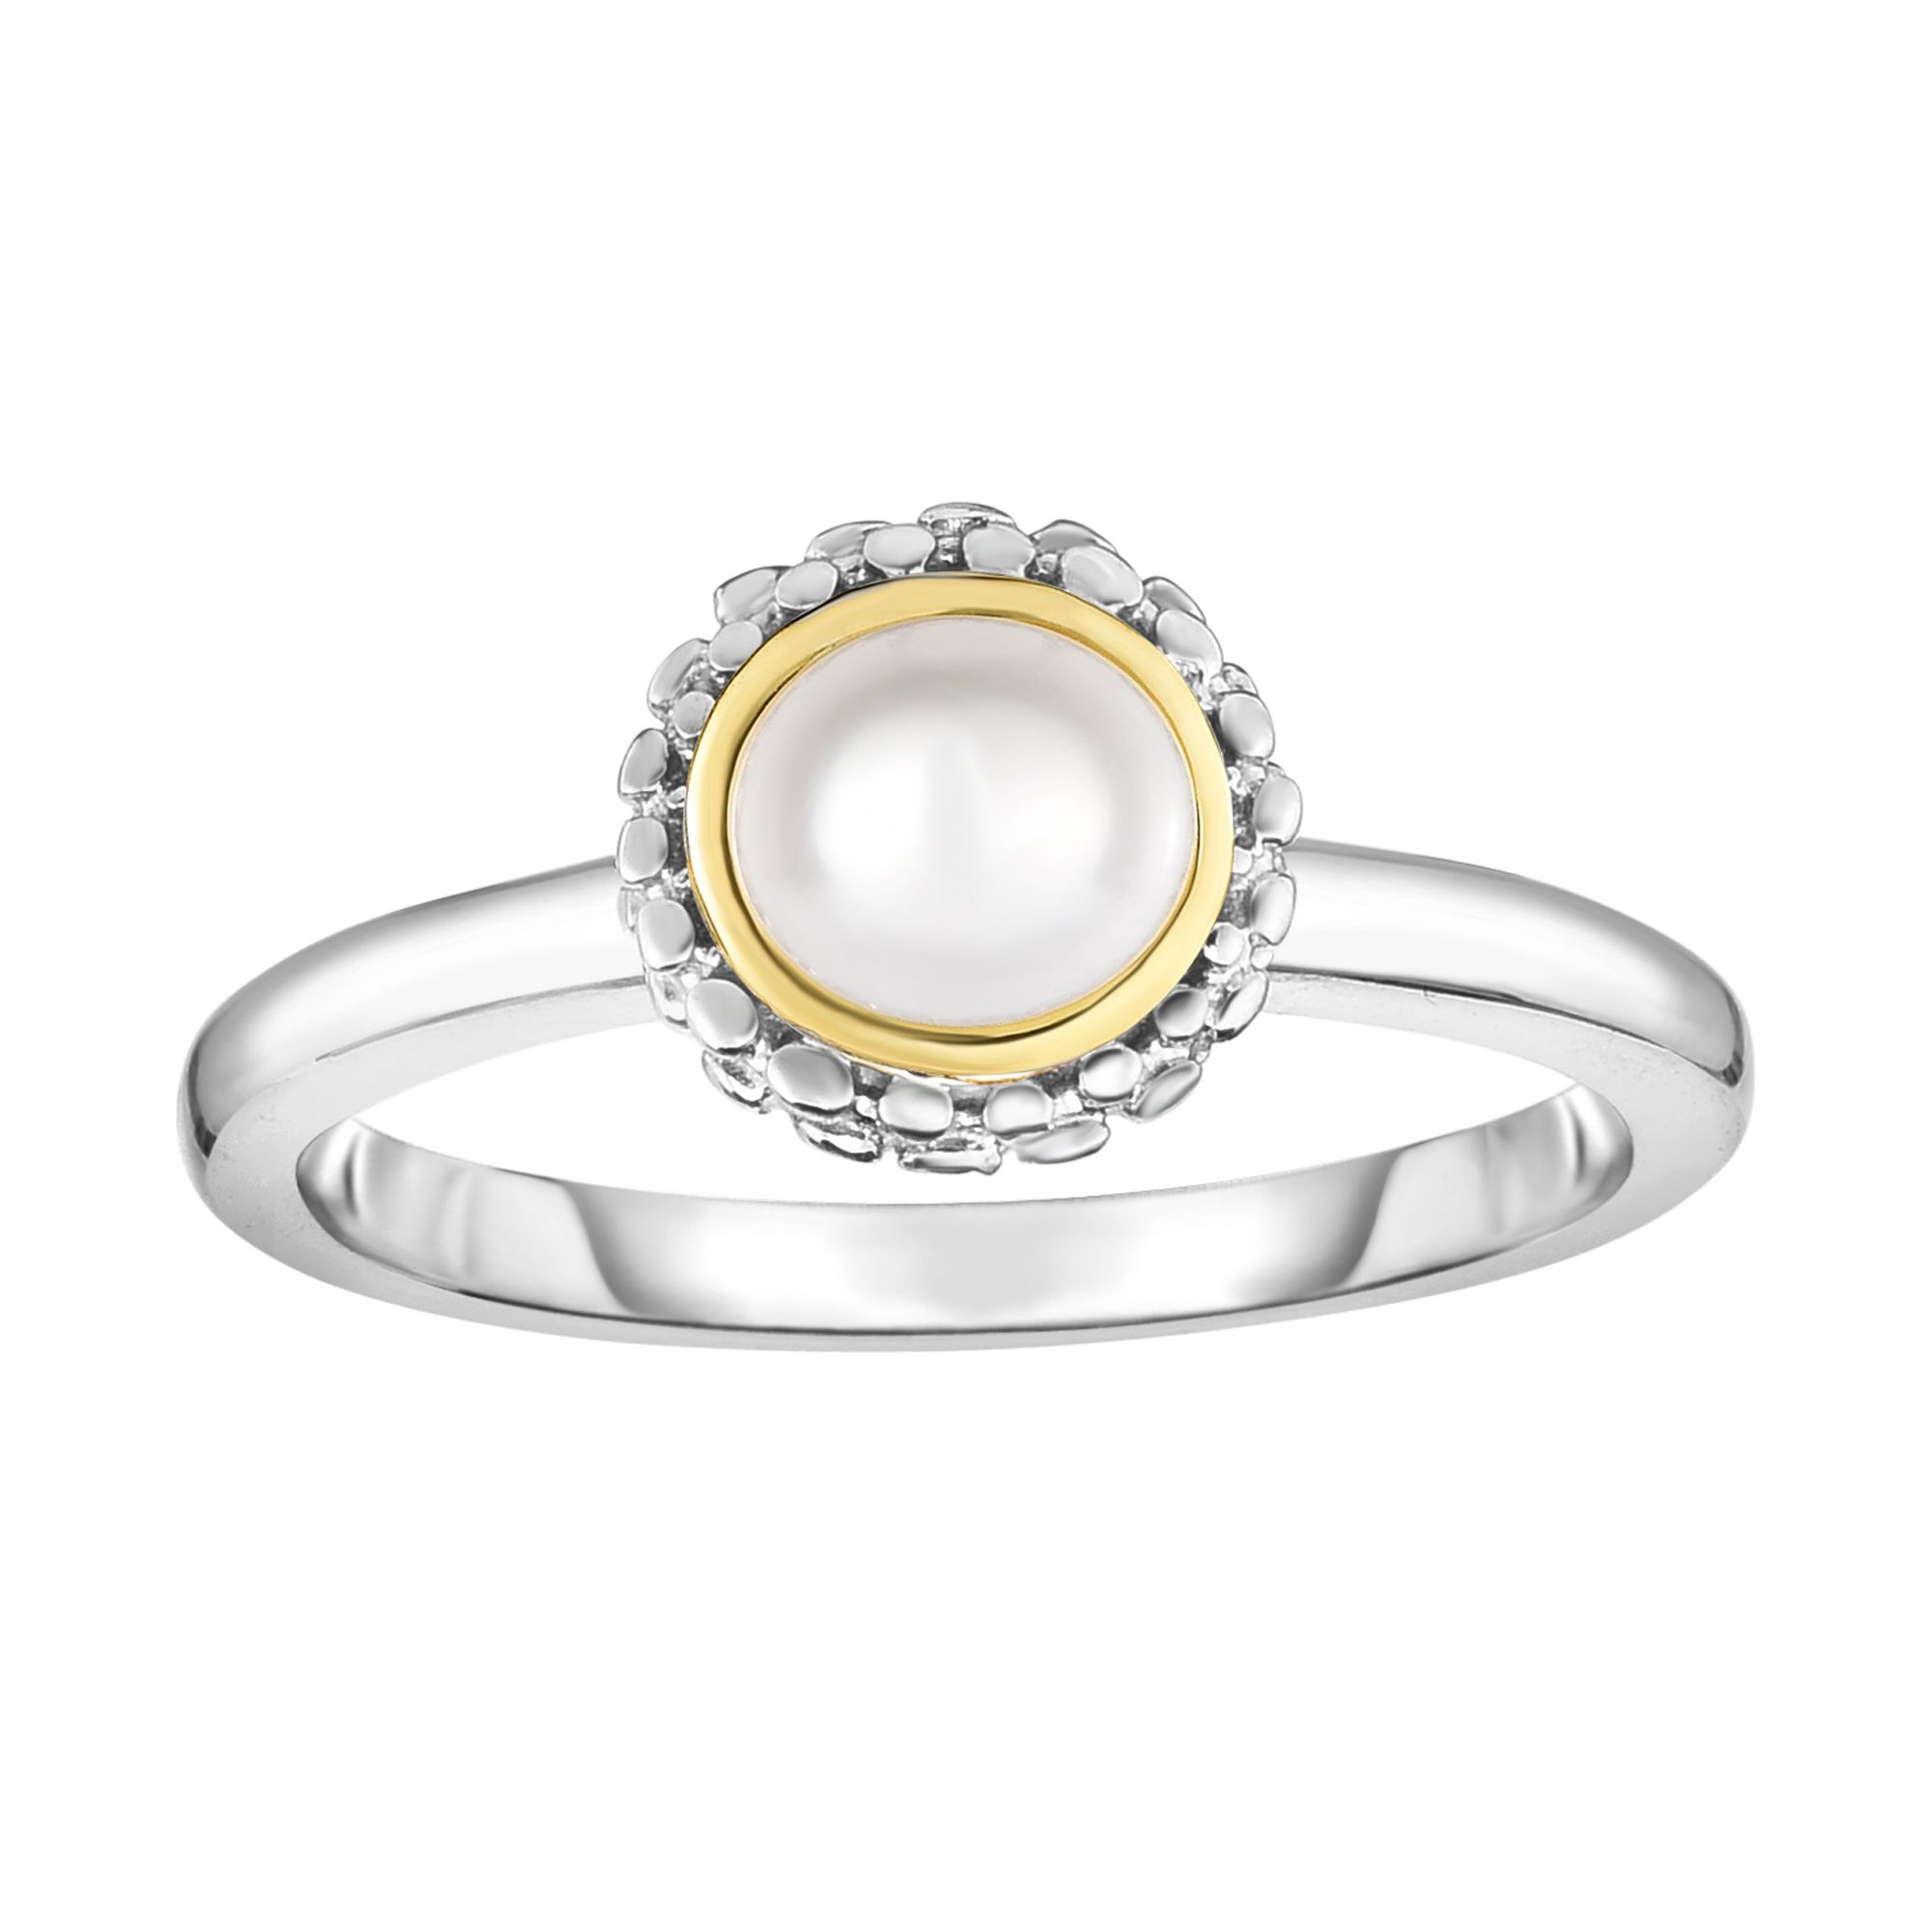 18kt+Silver Size-7 Yellow+Rhodium Finish ImageBased-TBR Shiny Fancy Ring +0.4000ct 4.5-5mm Ball White Pearl